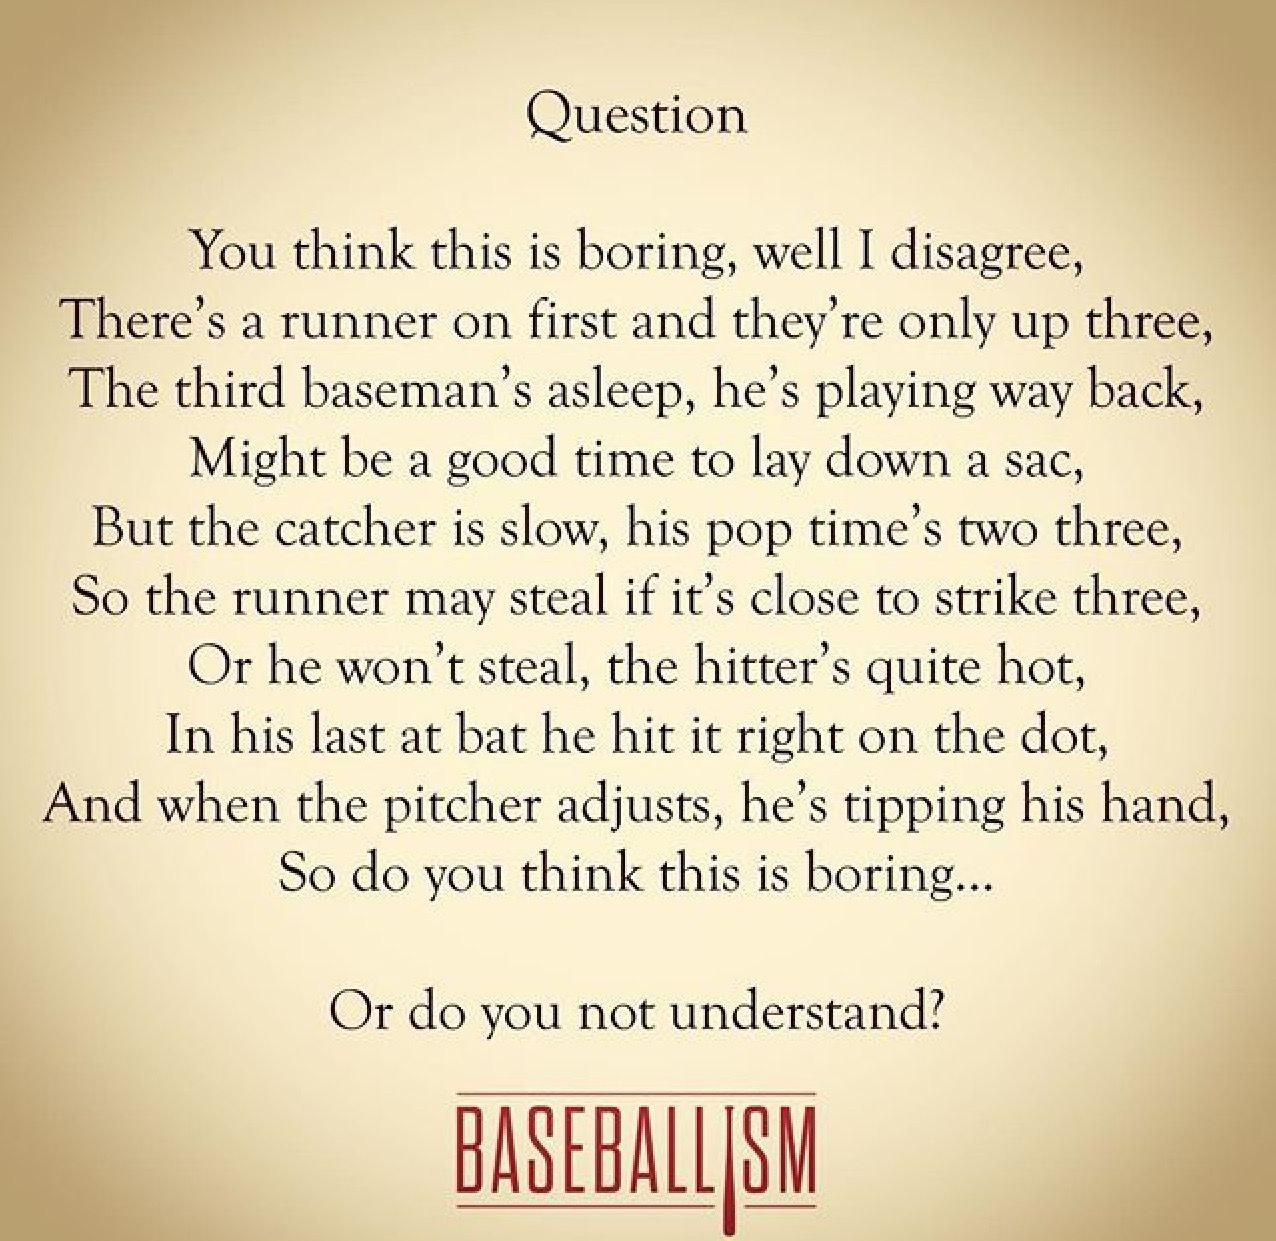 Baseball Is Anything But Boring If You Think It S Boring Then You Don T Understand The Game Love Baseball Baseball Quotes Baseball Uniforms Royals Baseball